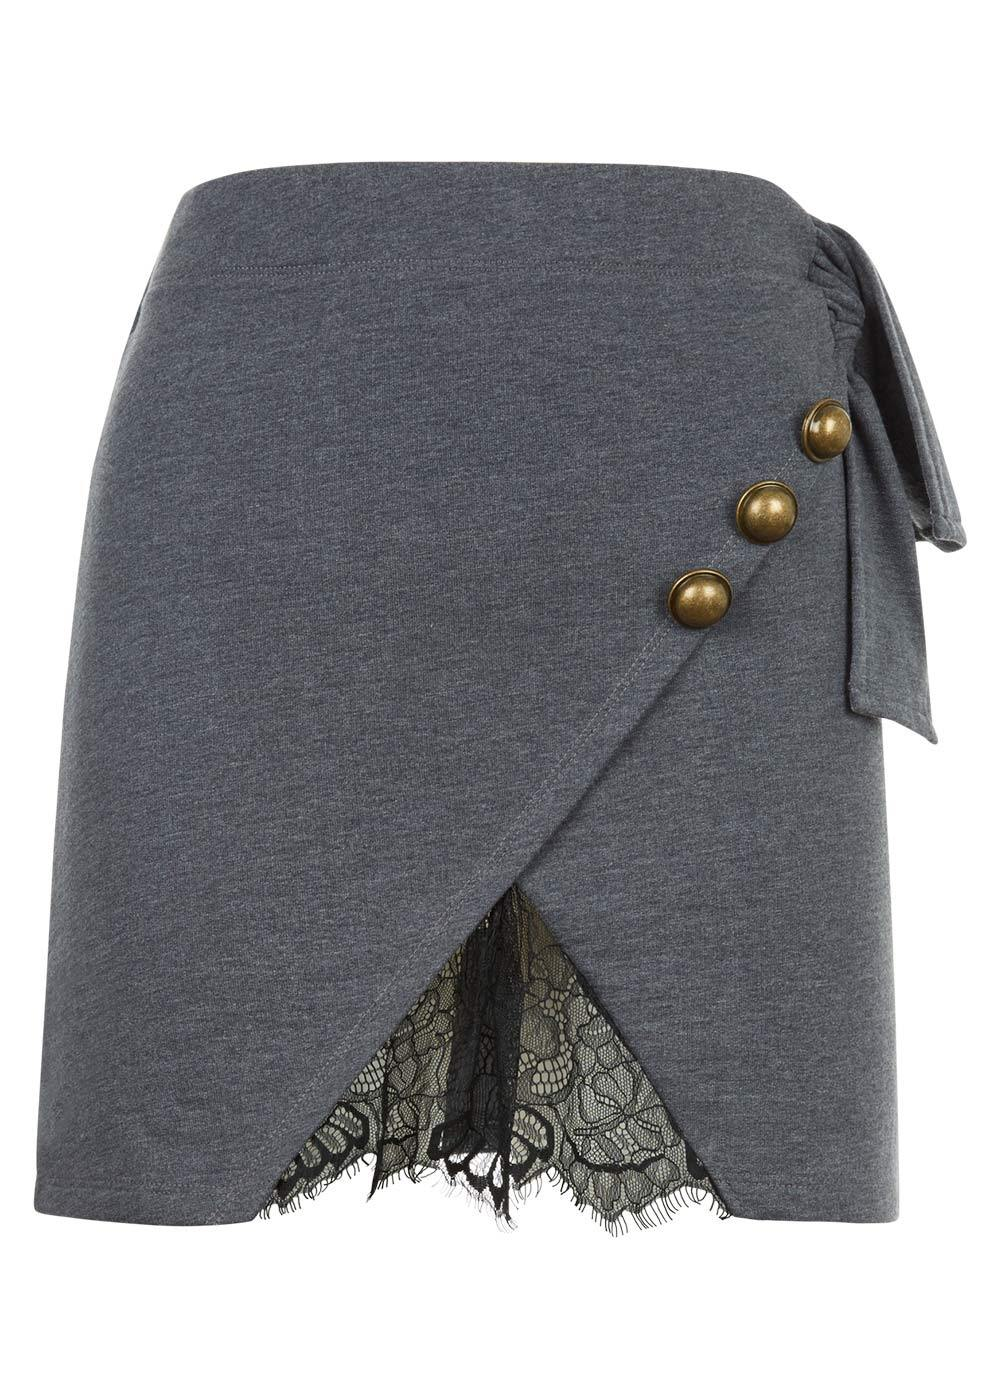 Girls Blue Grey Mini Skirt With Buttons And Lace Insert